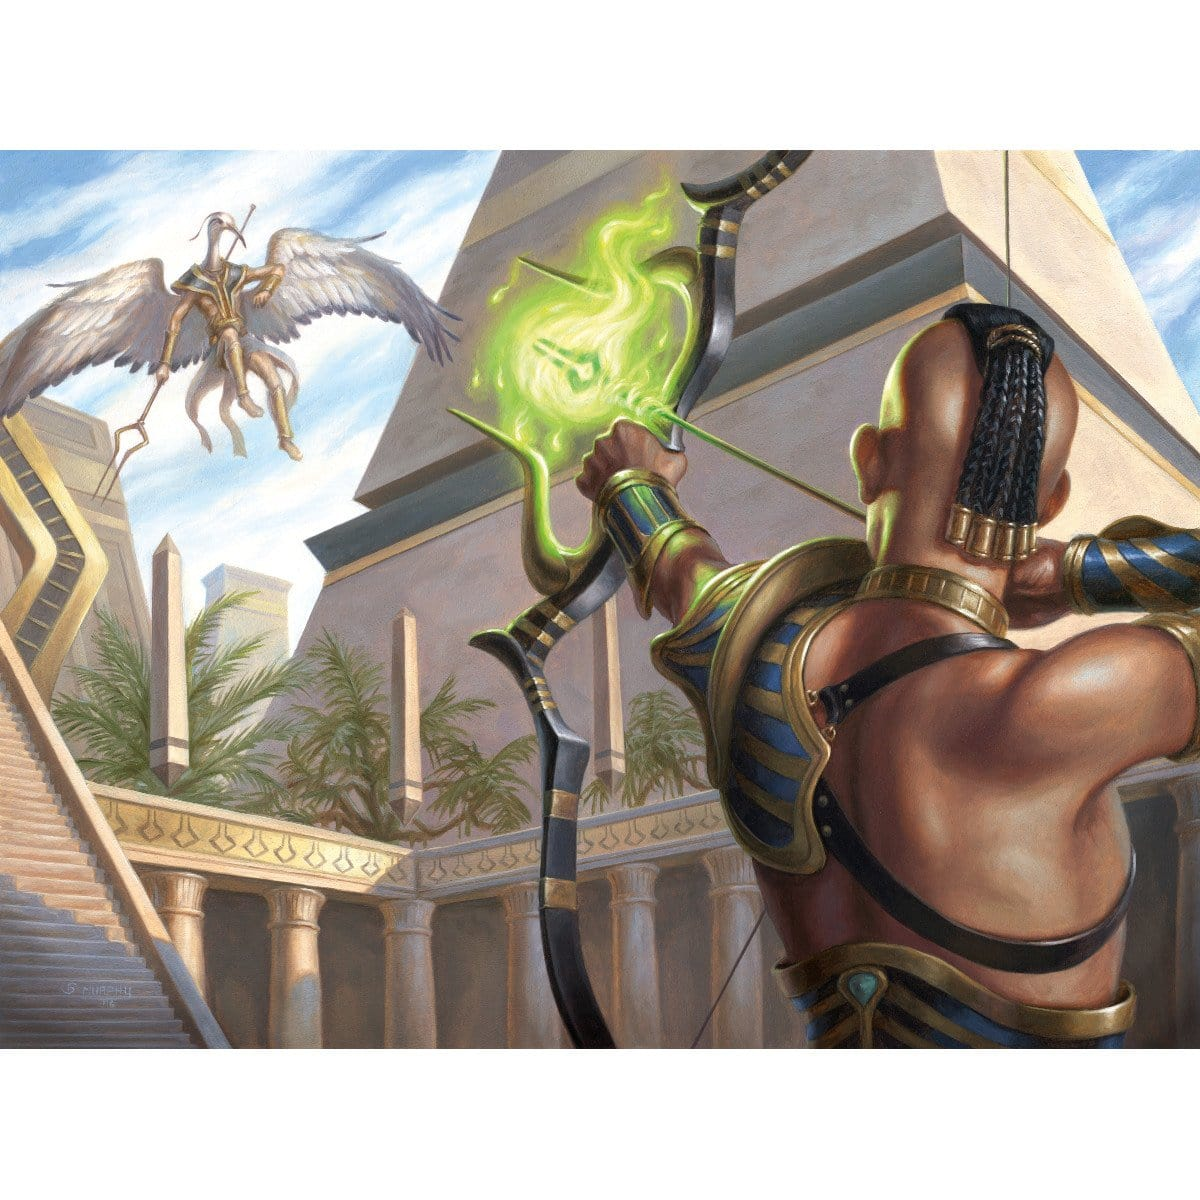 Stinging Shot Print - Print - Original Magic Art - Accessories for Magic the Gathering and other card games